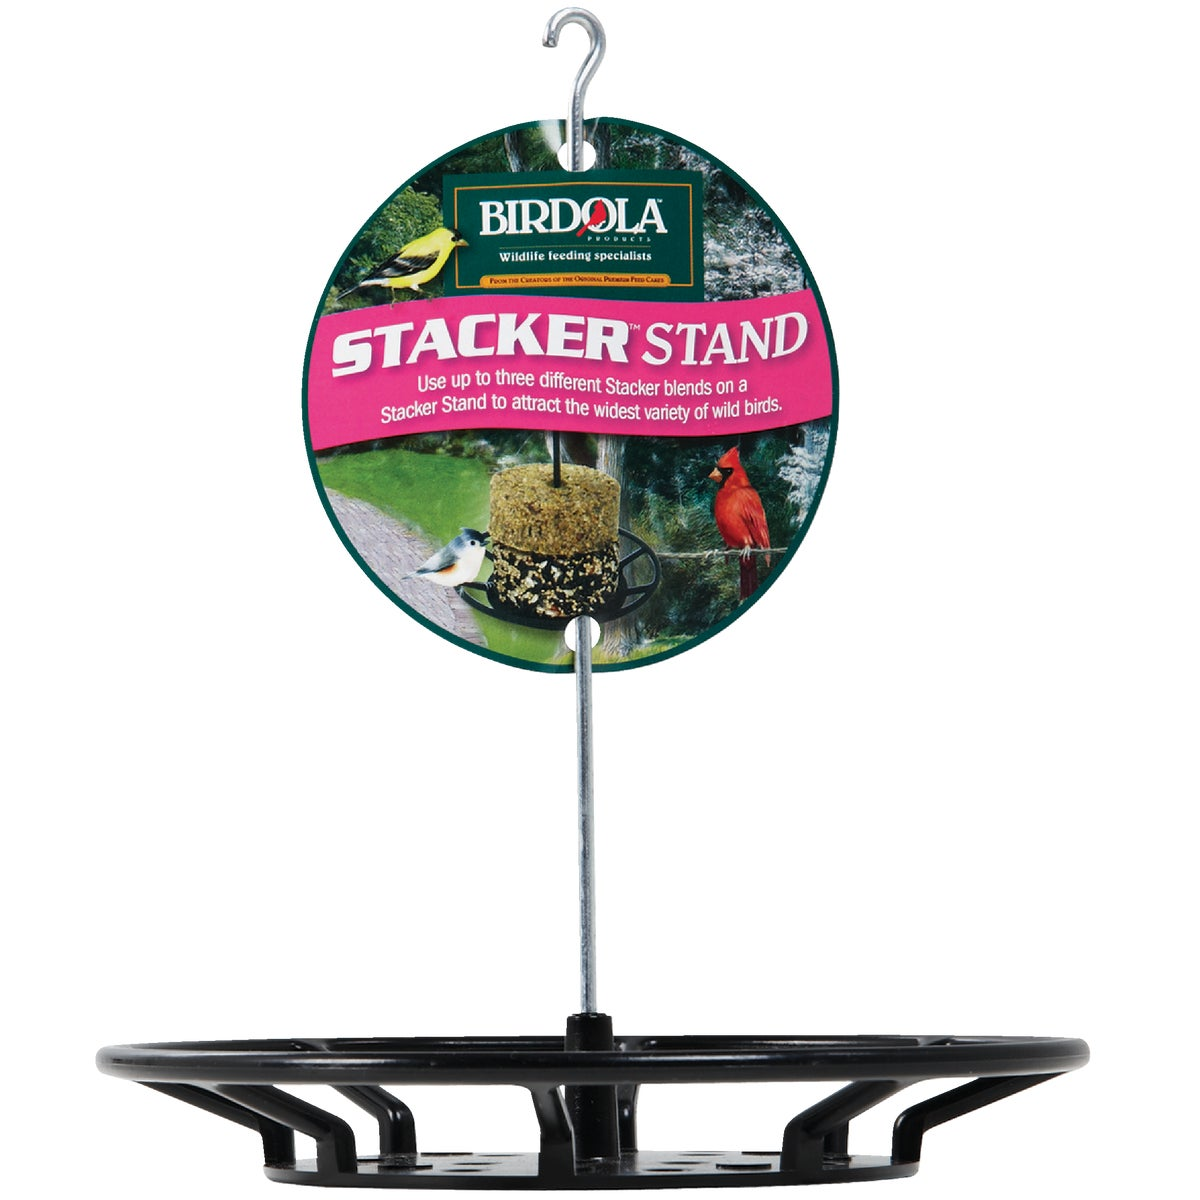 STACKER STAND FEEDER